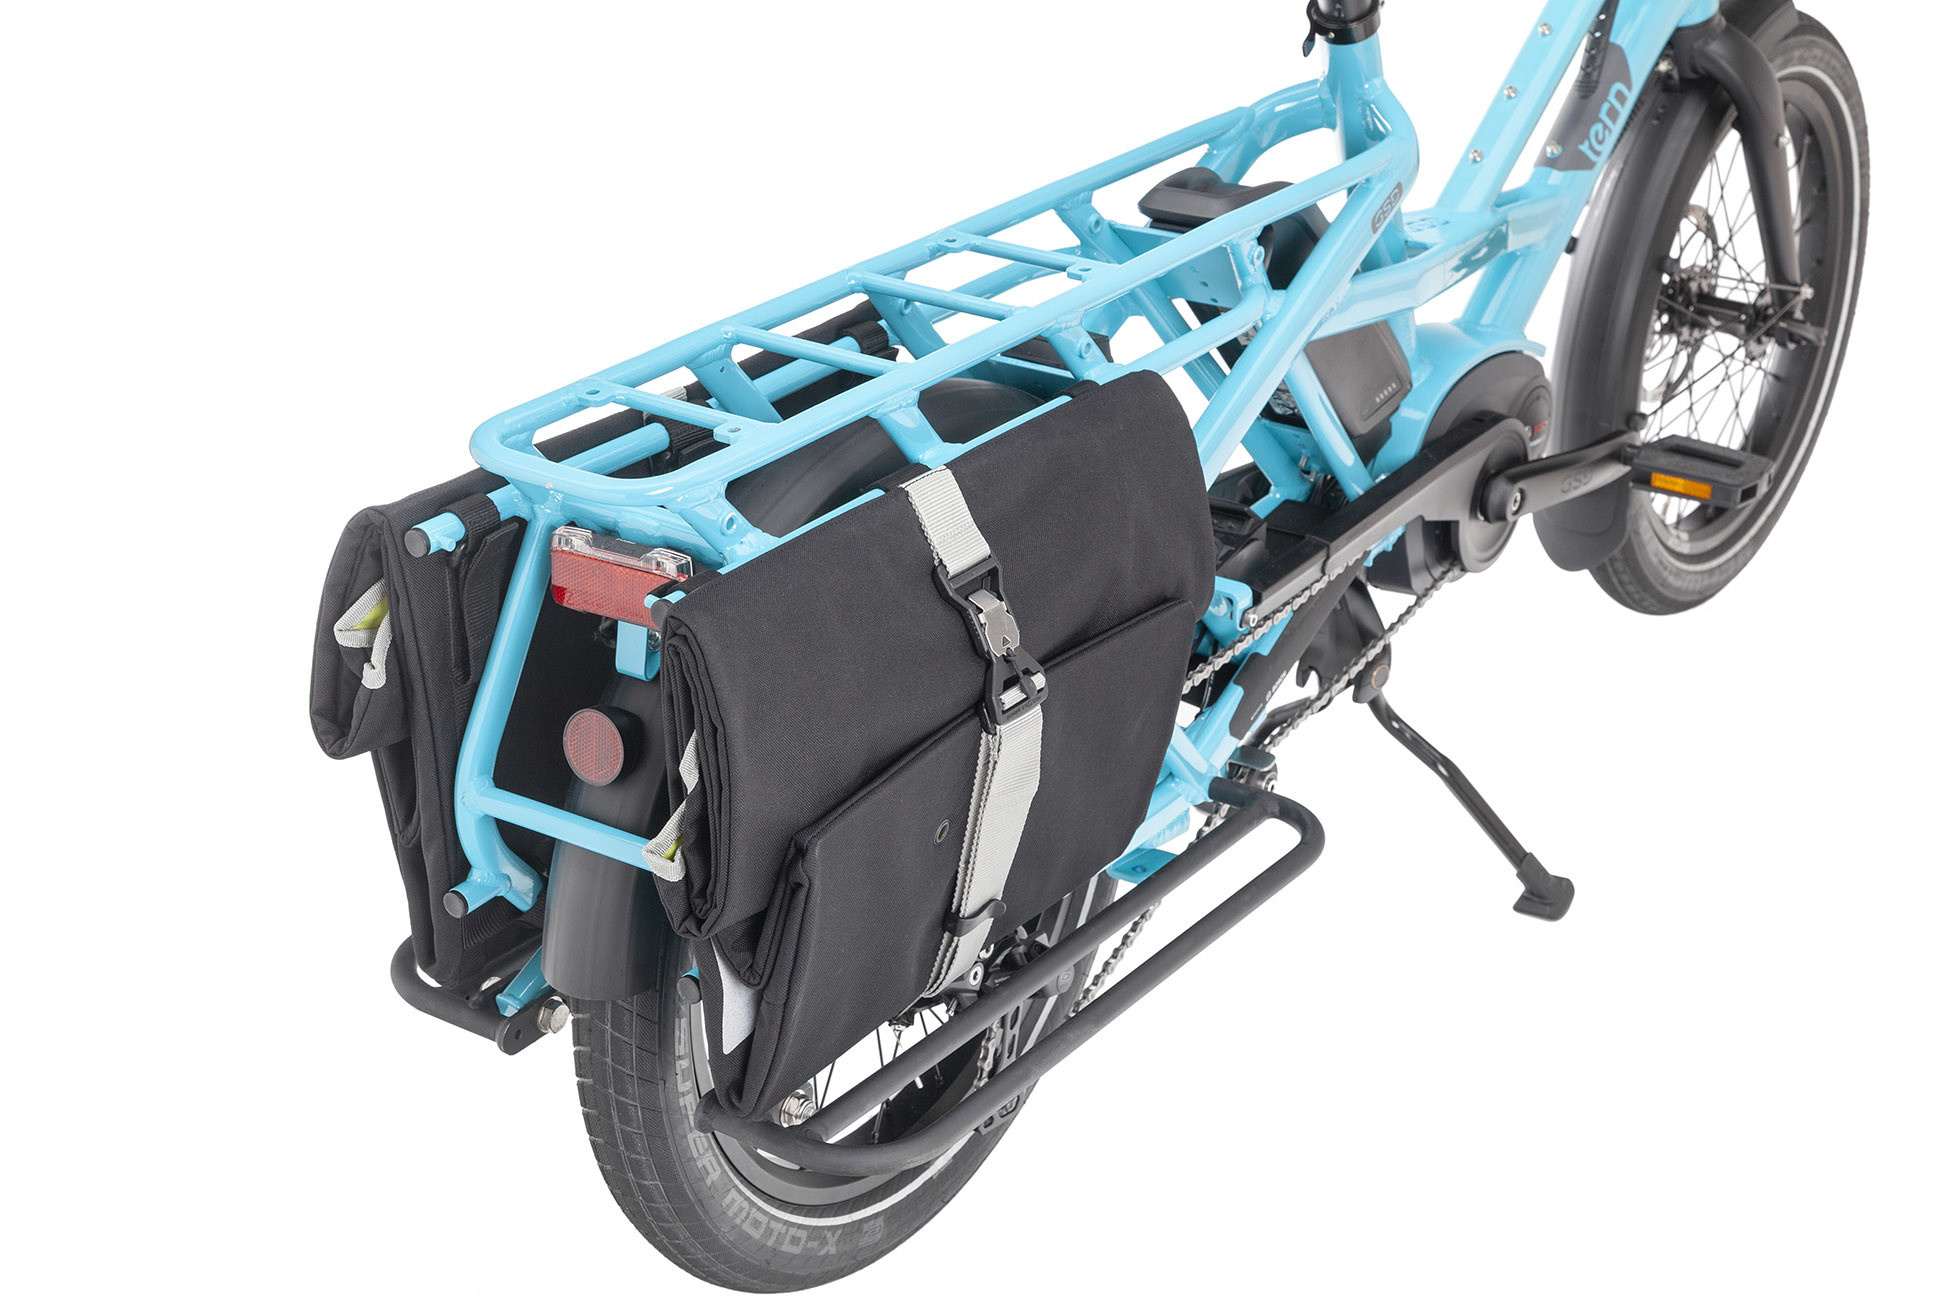 Tern Tern Cargo Hold 37 Panniers, Black, for HSD/GSD